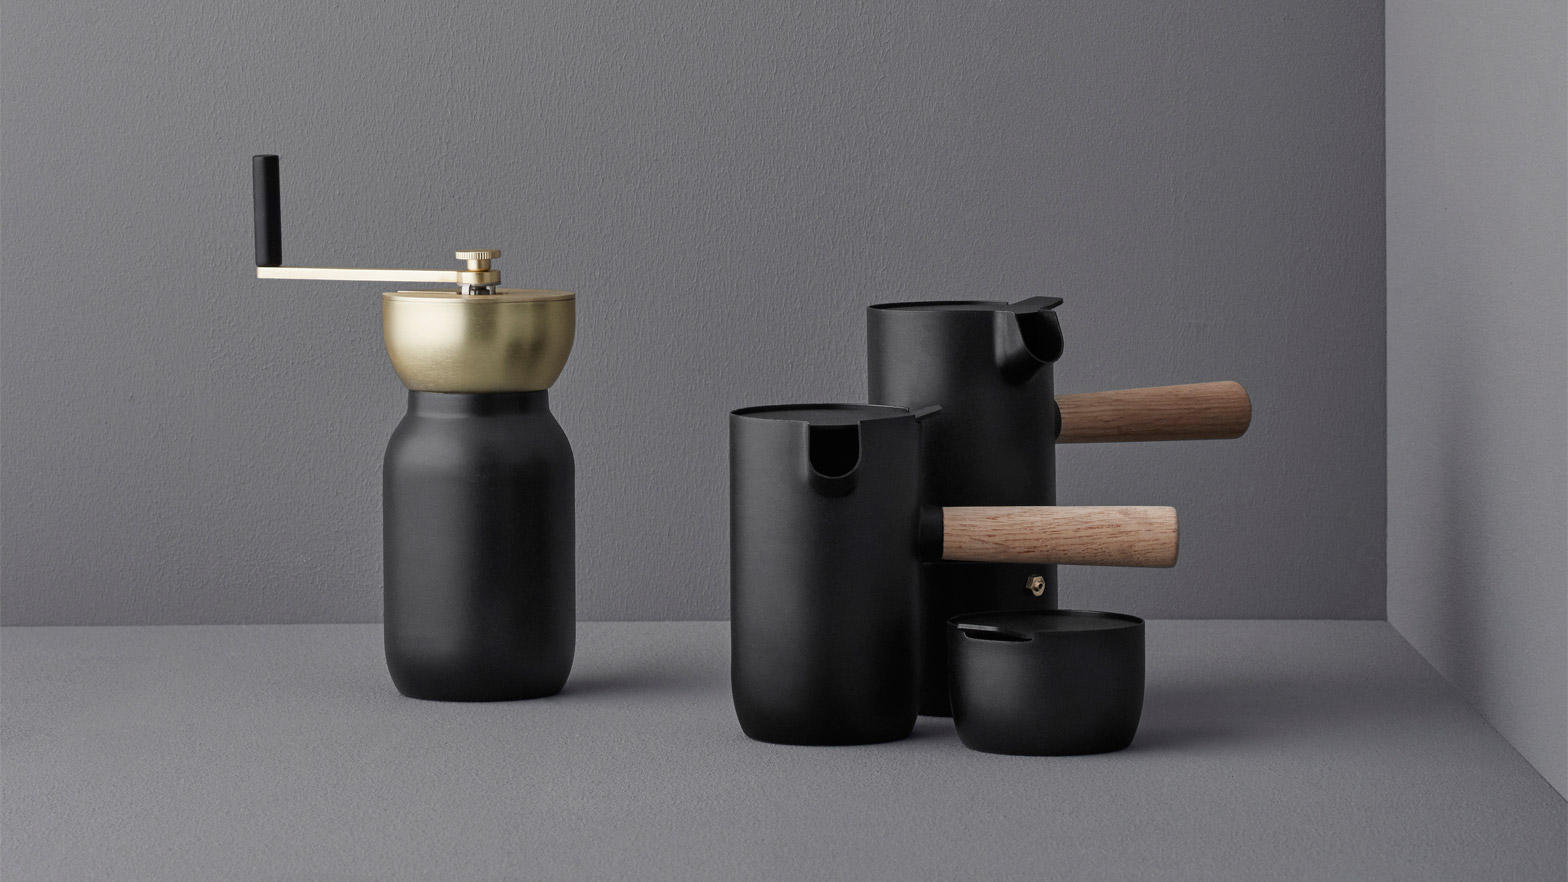 Somethings Collar Set Encourages Users To Brew Coffee